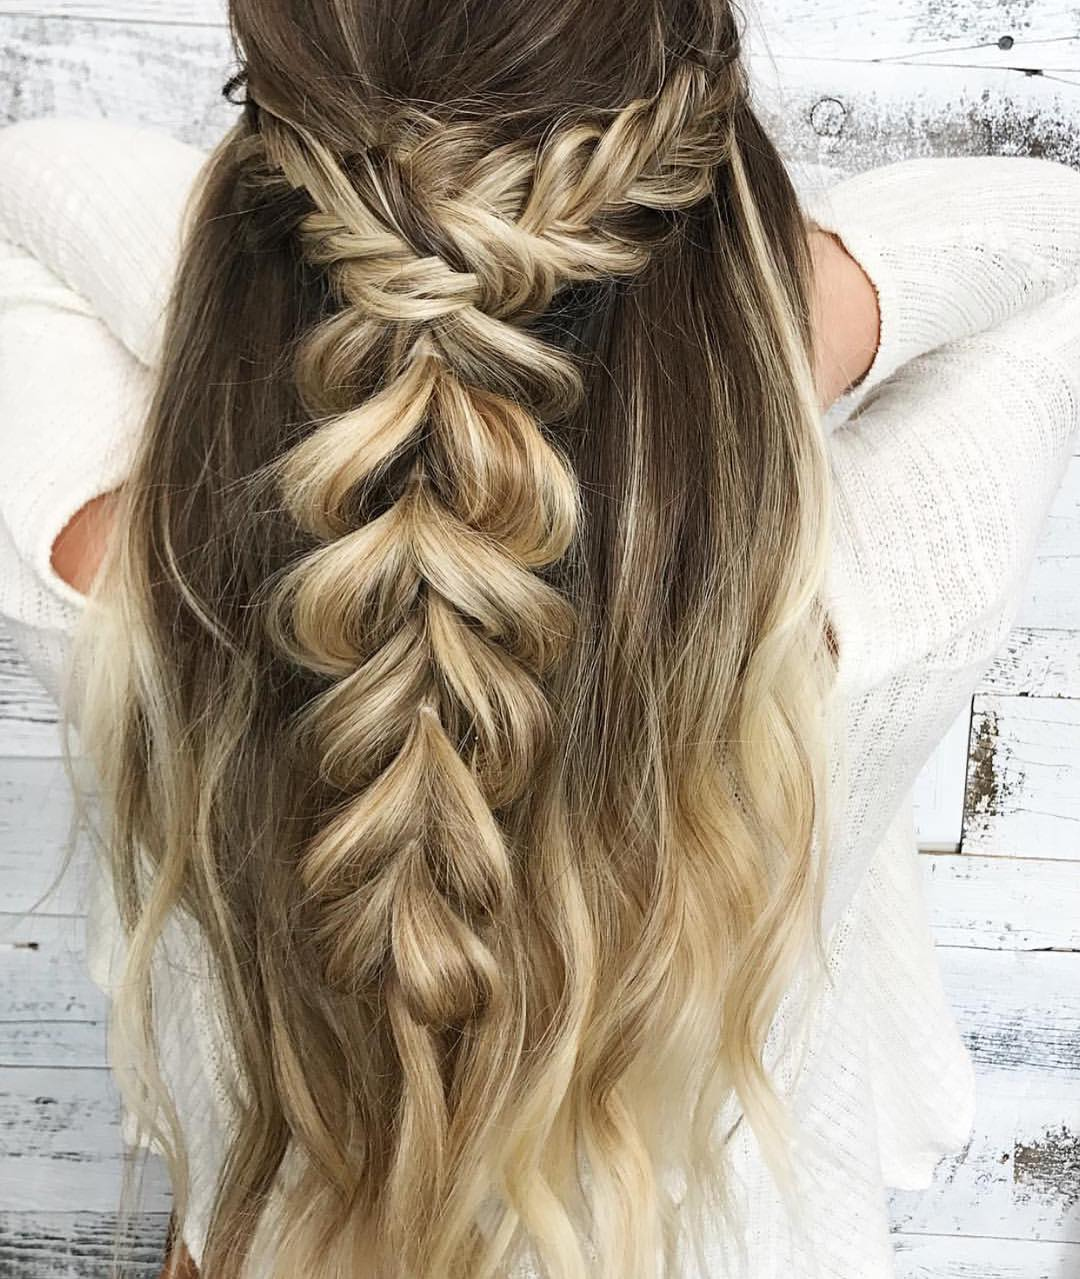 Braid Ponytail Hairstyles for Long Hair, Ponytail Long Hairstyle Ideas